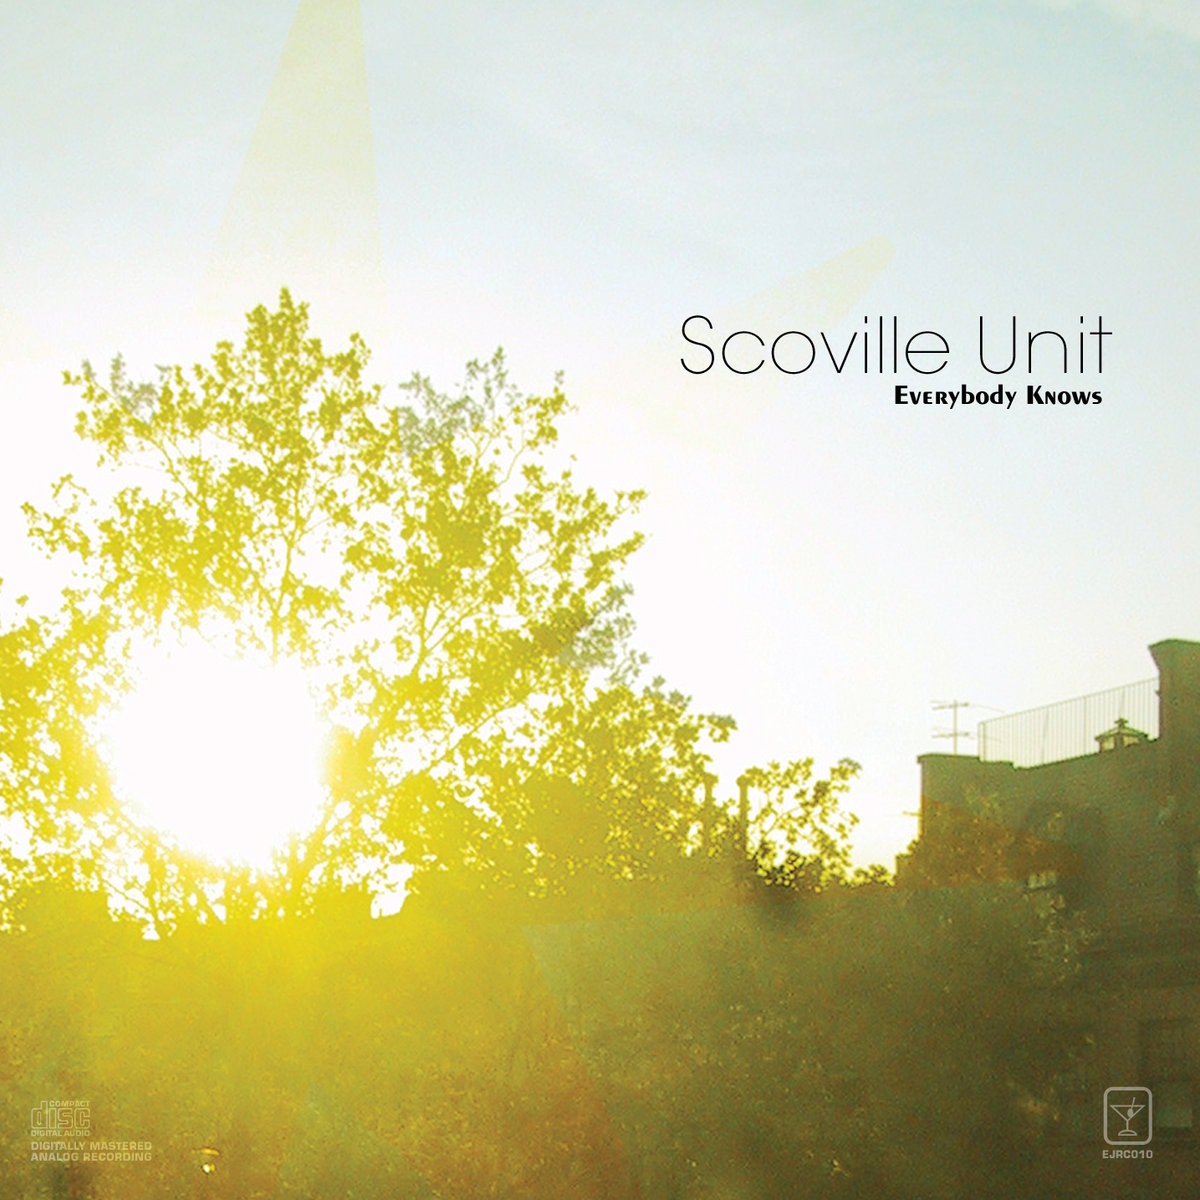 Scoville Unit - Everybody Knows